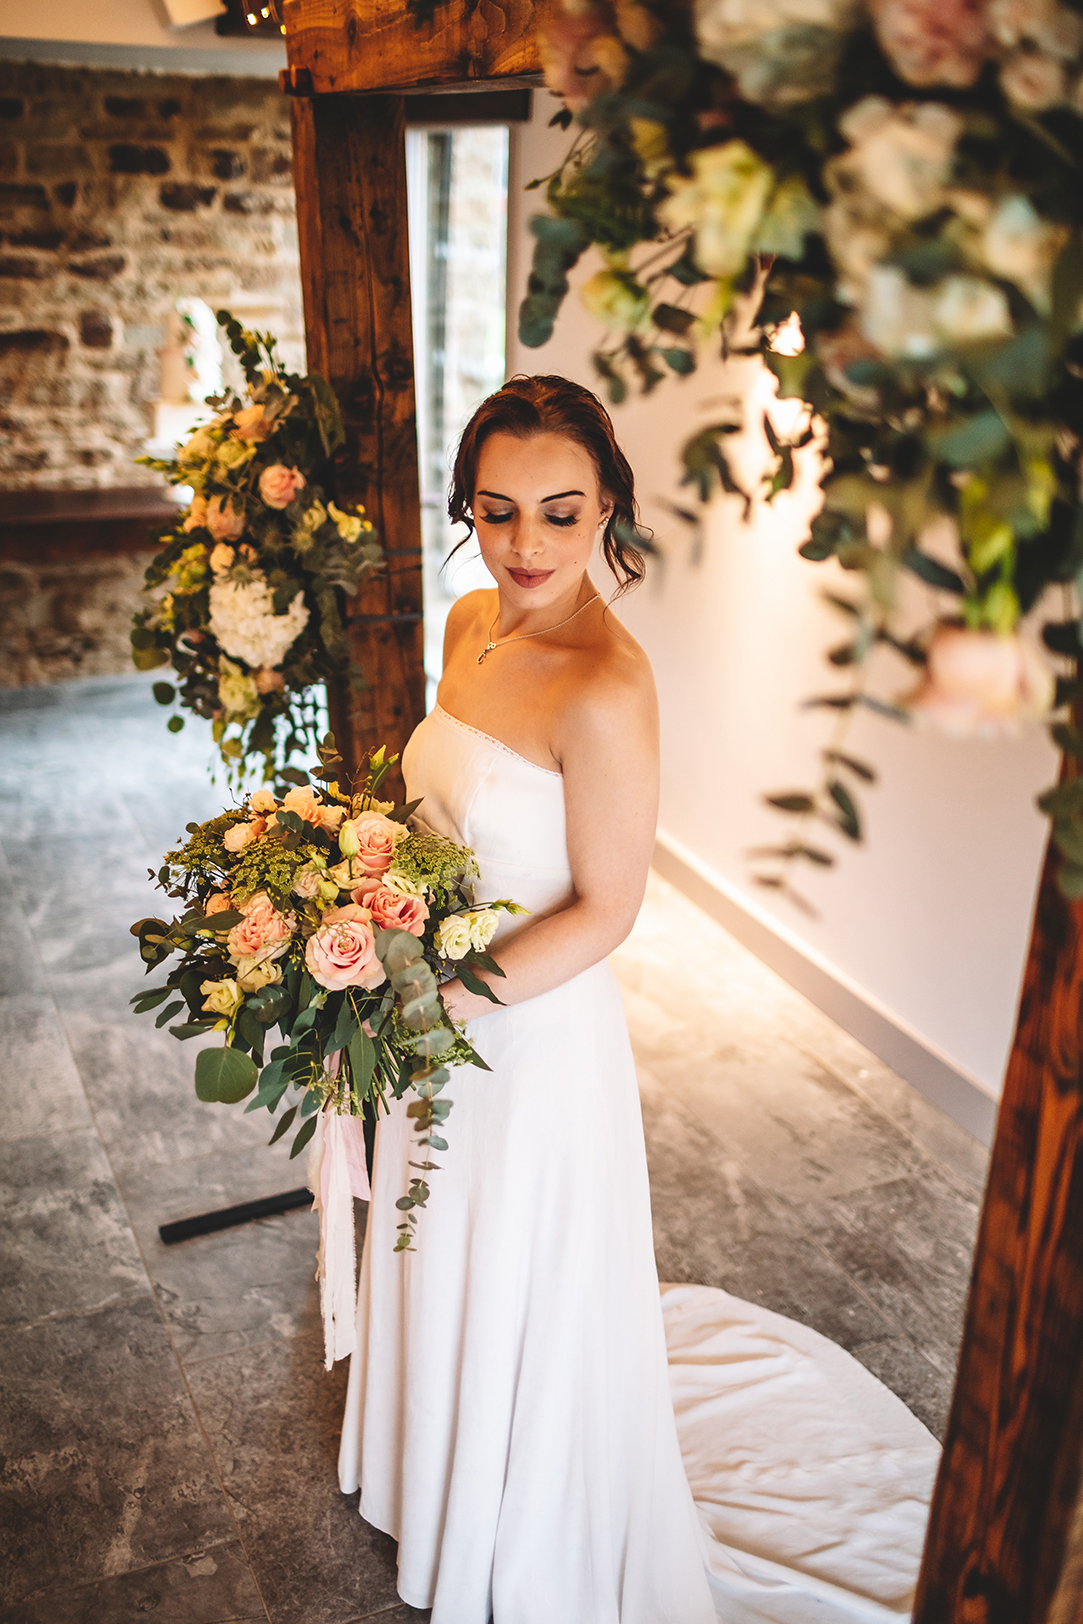 Bride stands under a rustic wooden arch decorated wthflowers in Manor Oaks House barn wedding venue